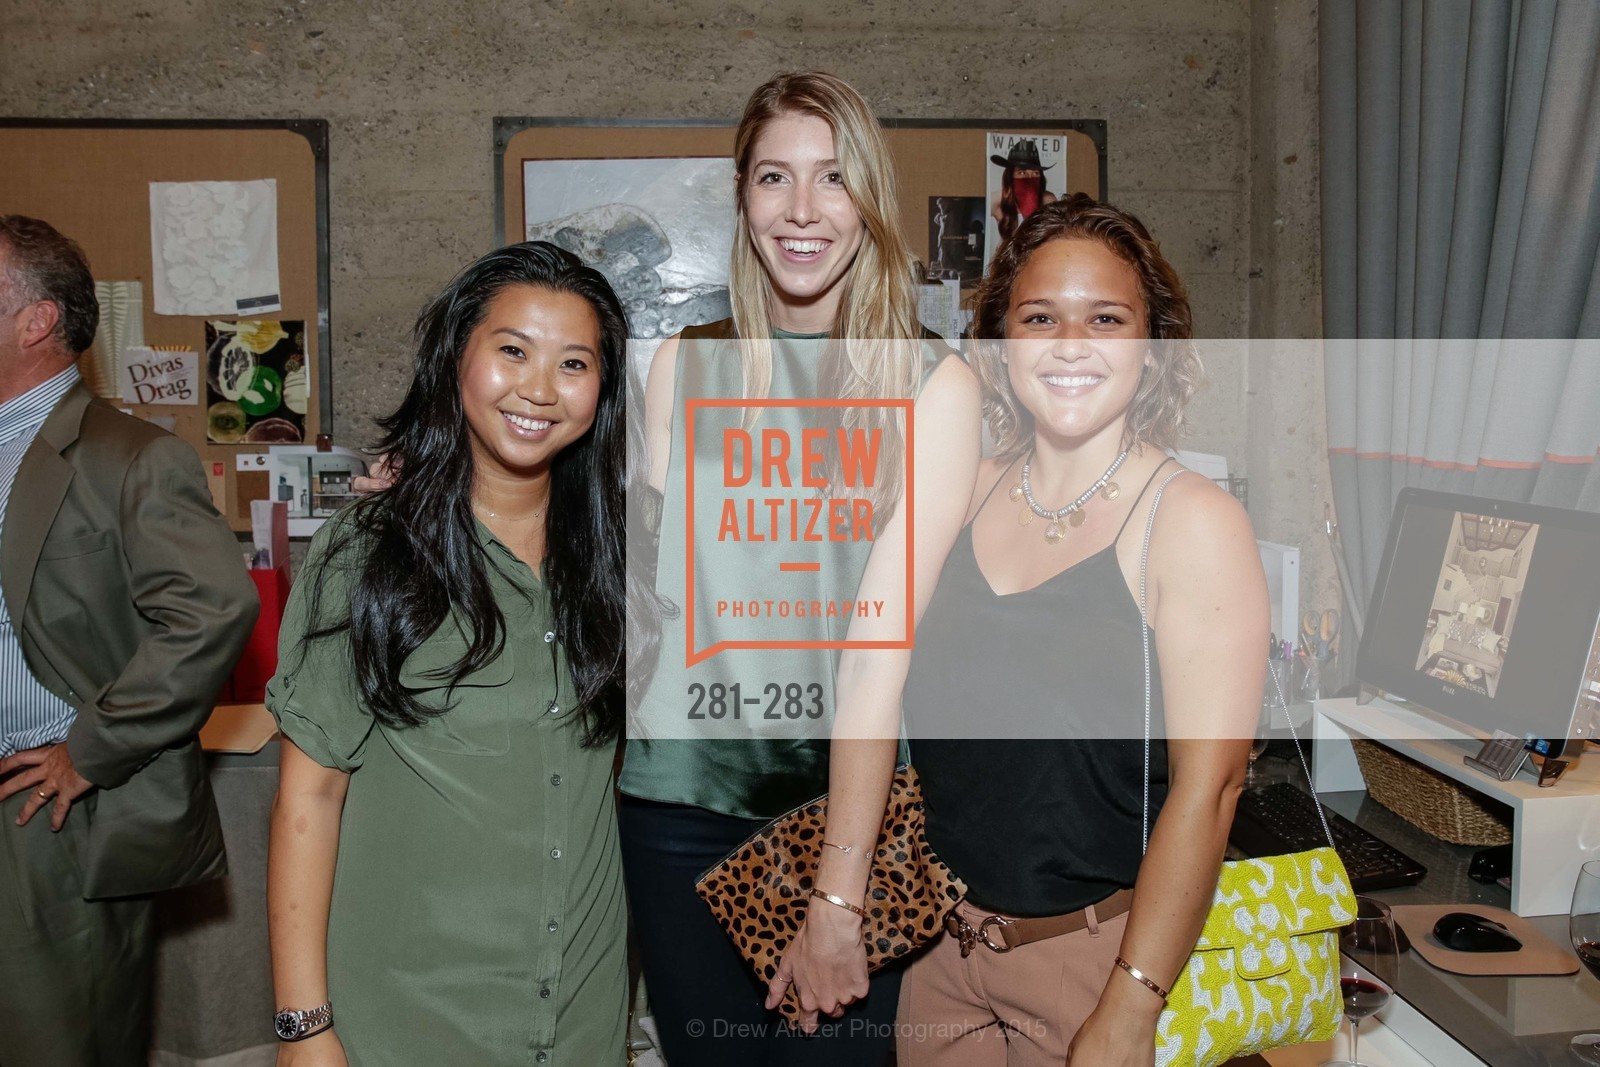 Enlin Chua, Megan McAlister, Cookie Arader, Jay Jeffers Host Will Harlan, Jay Jeffers CAVALIER. 1035 Post Street, San Francisco 94109, September 10th, 2015,Drew Altizer, Drew Altizer Photography, full-service agency, private events, San Francisco photographer, photographer california